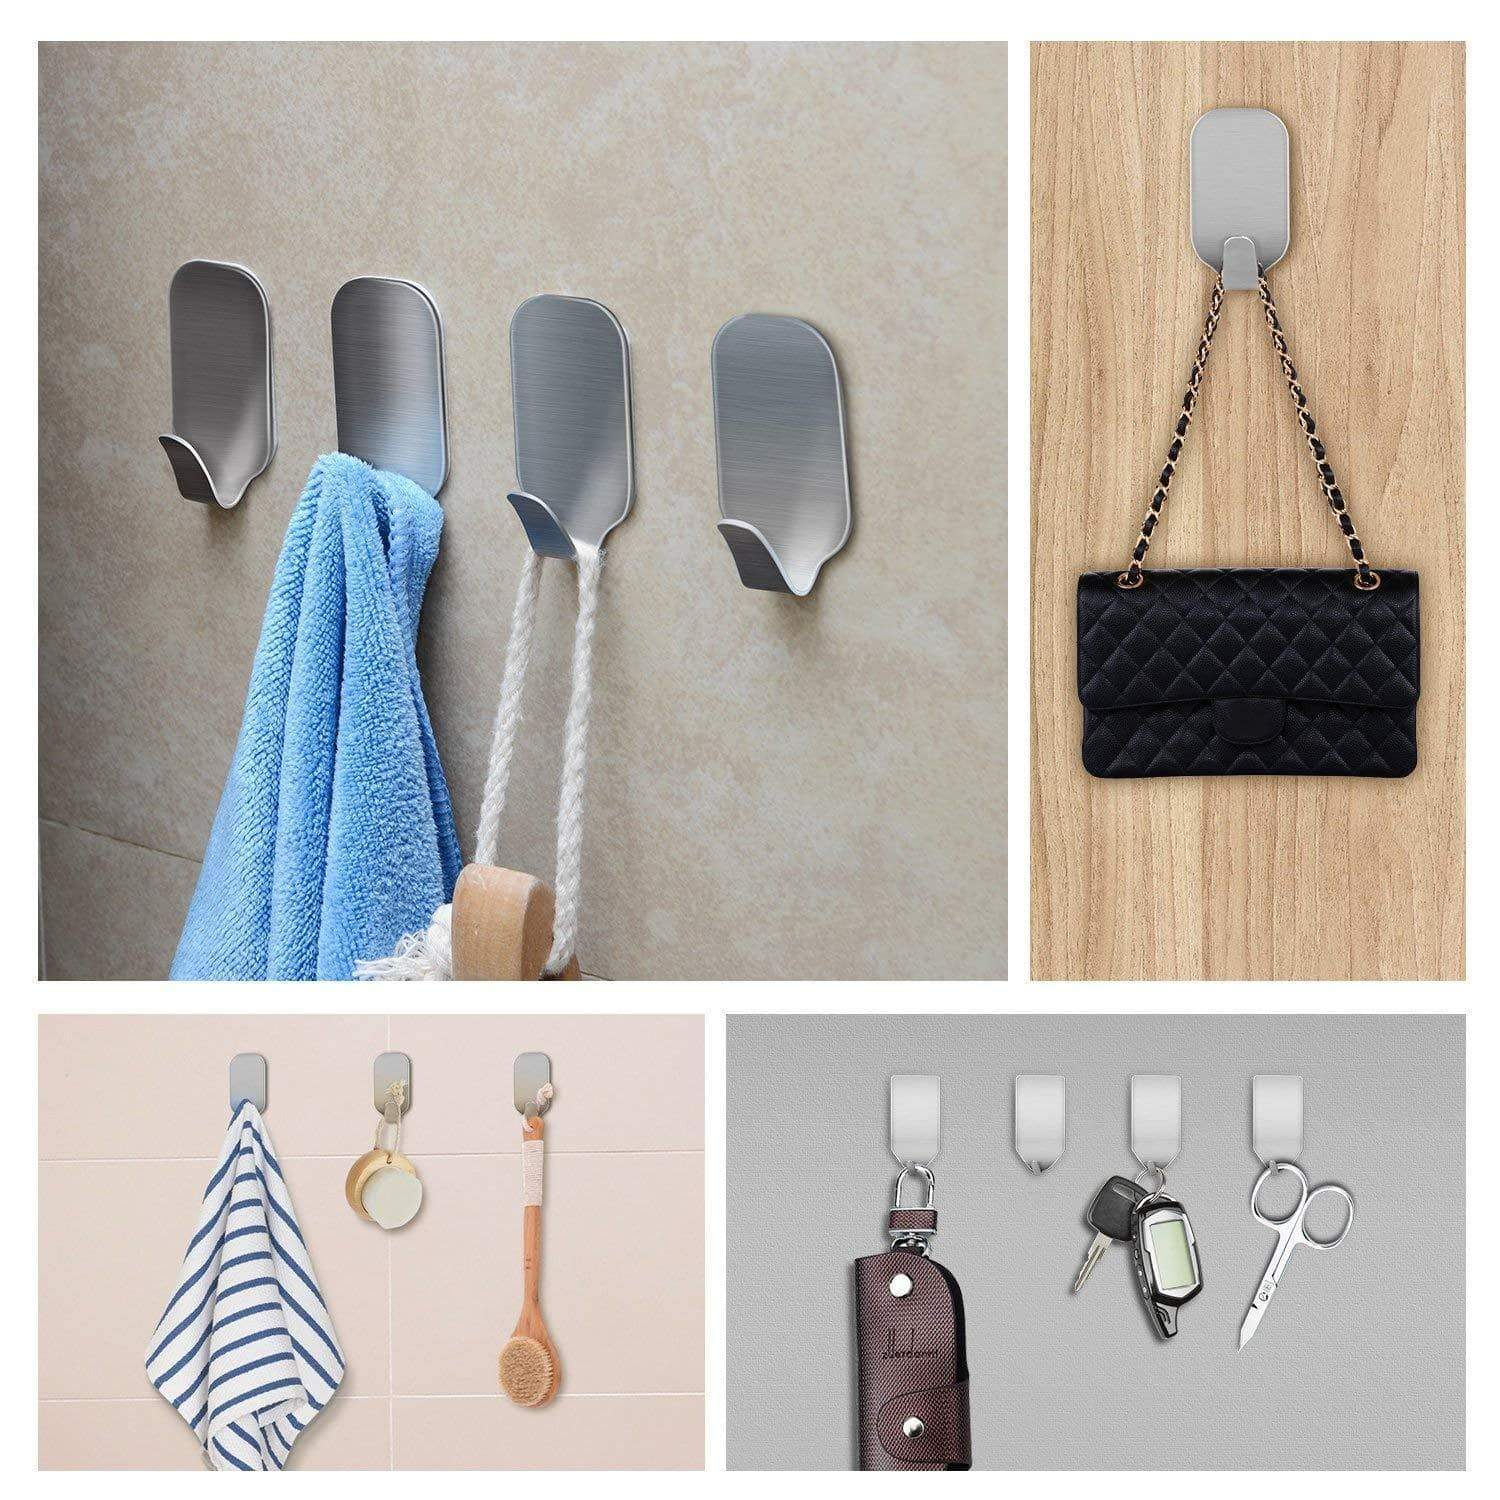 Kitchen amoner adhesive hooks heavy duty wall hooks stainless steel ultra strong waterproof hanger for robe coat towel keys bags home kitchen bathroom set of 16